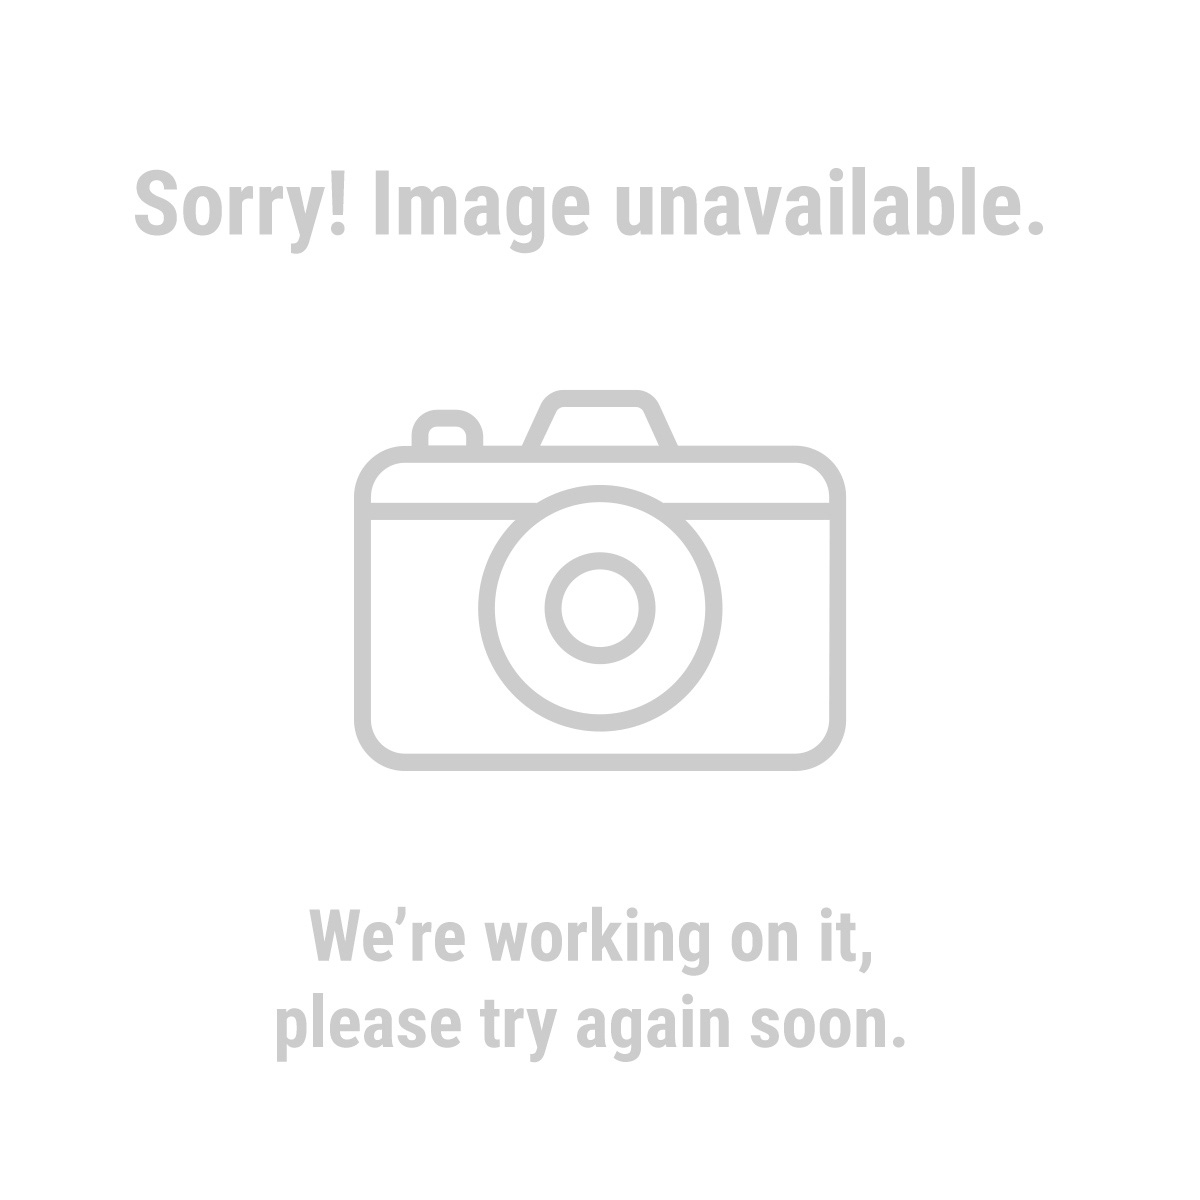 5-1/2 Horsepower Chipper Shredder